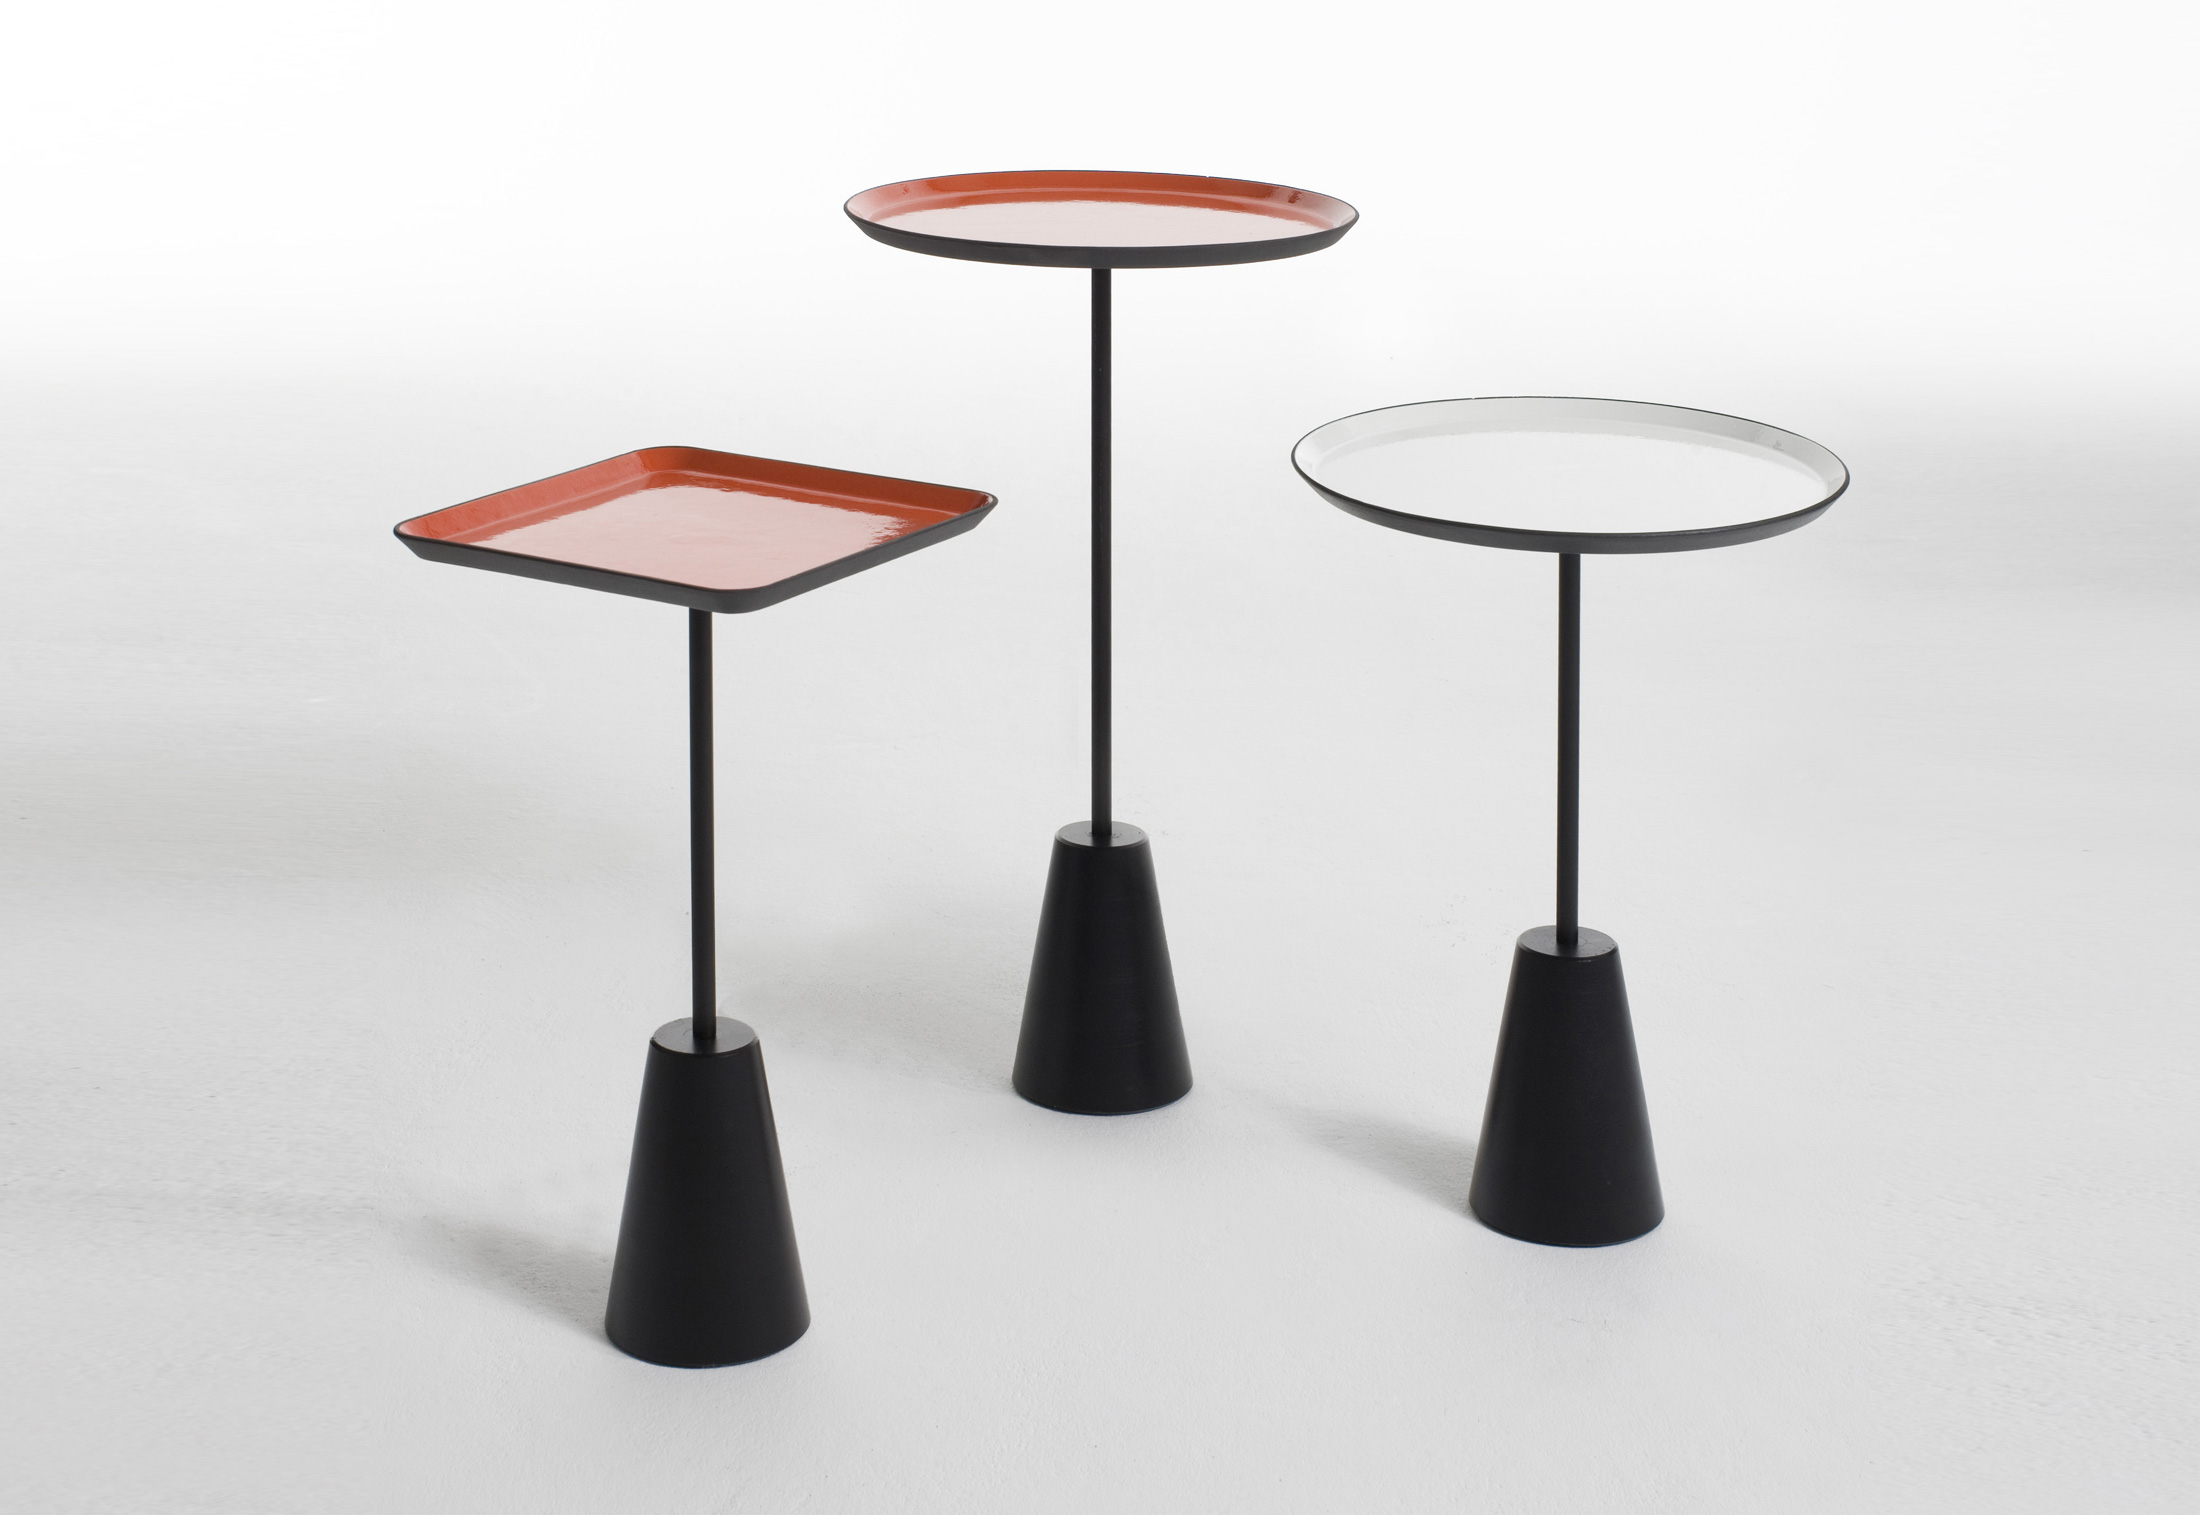 Spot Table Red Round By Tom Dixon STYLEPARK - Tom dixon coffee table